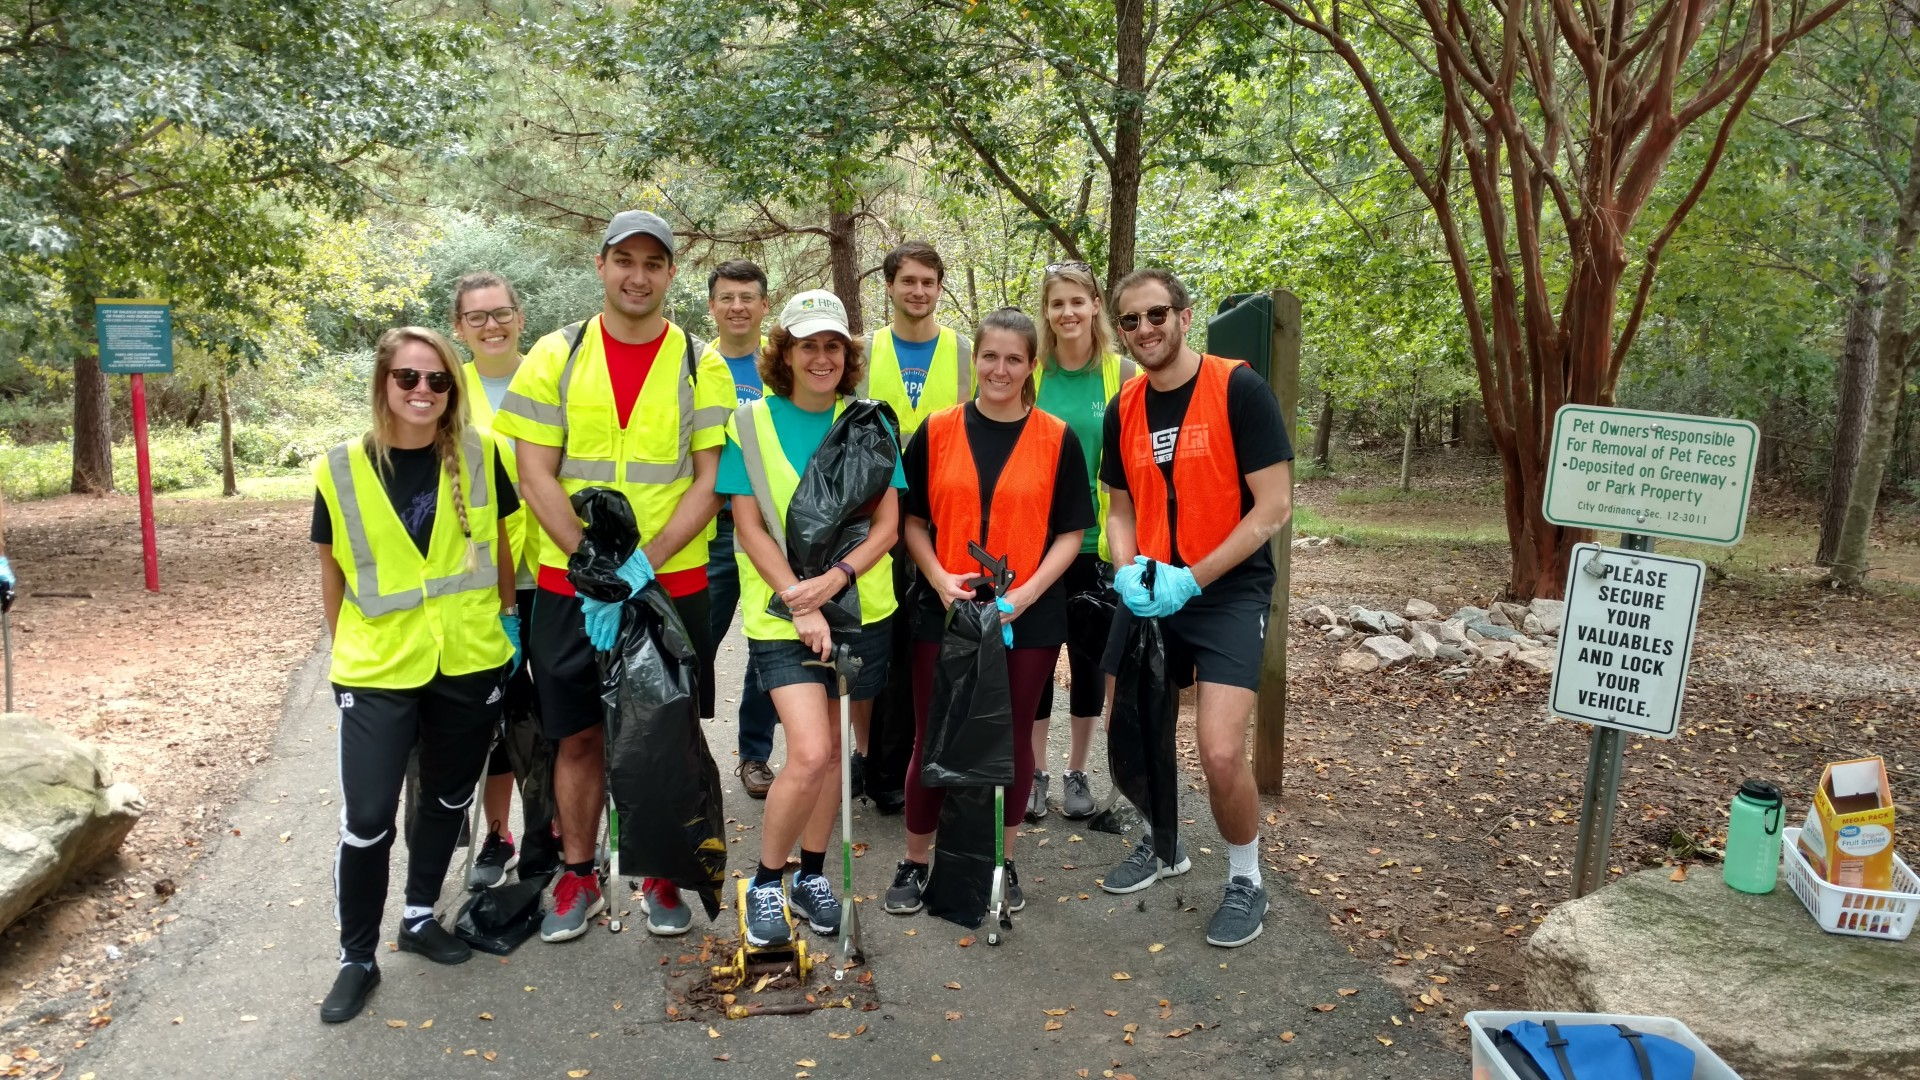 A group of park volunteers cleaning up along a greenway trail